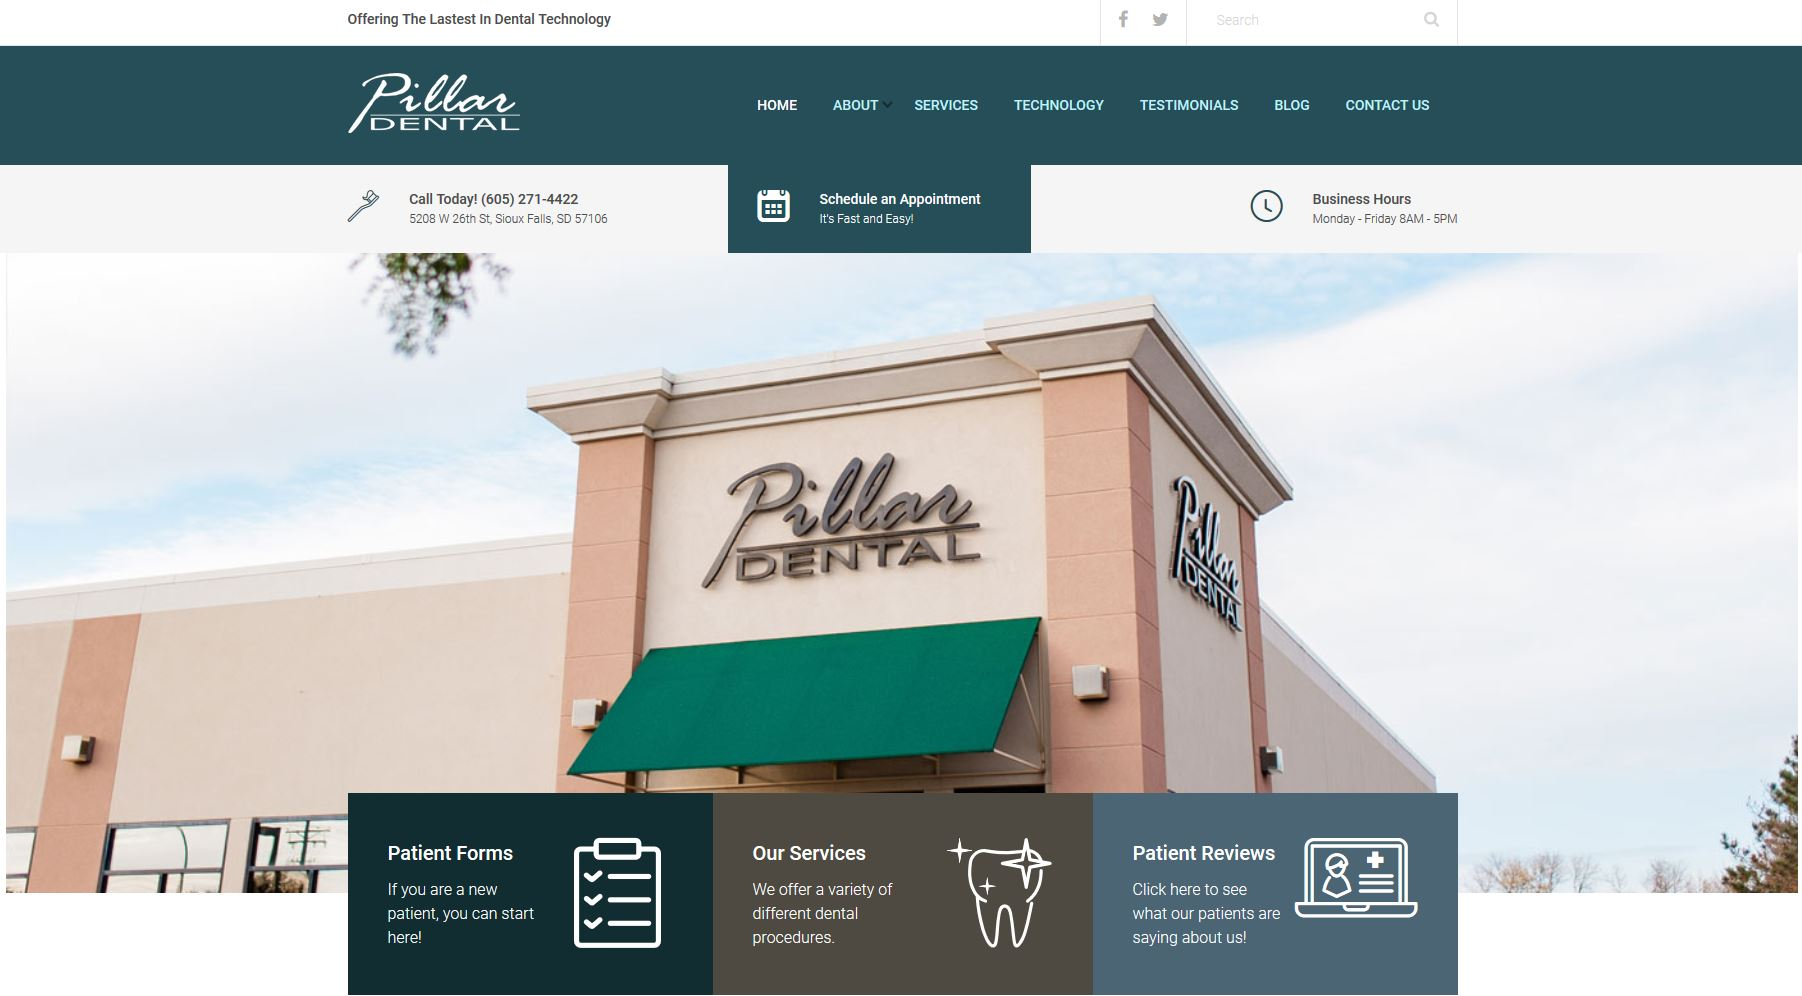 pillar-dental-website